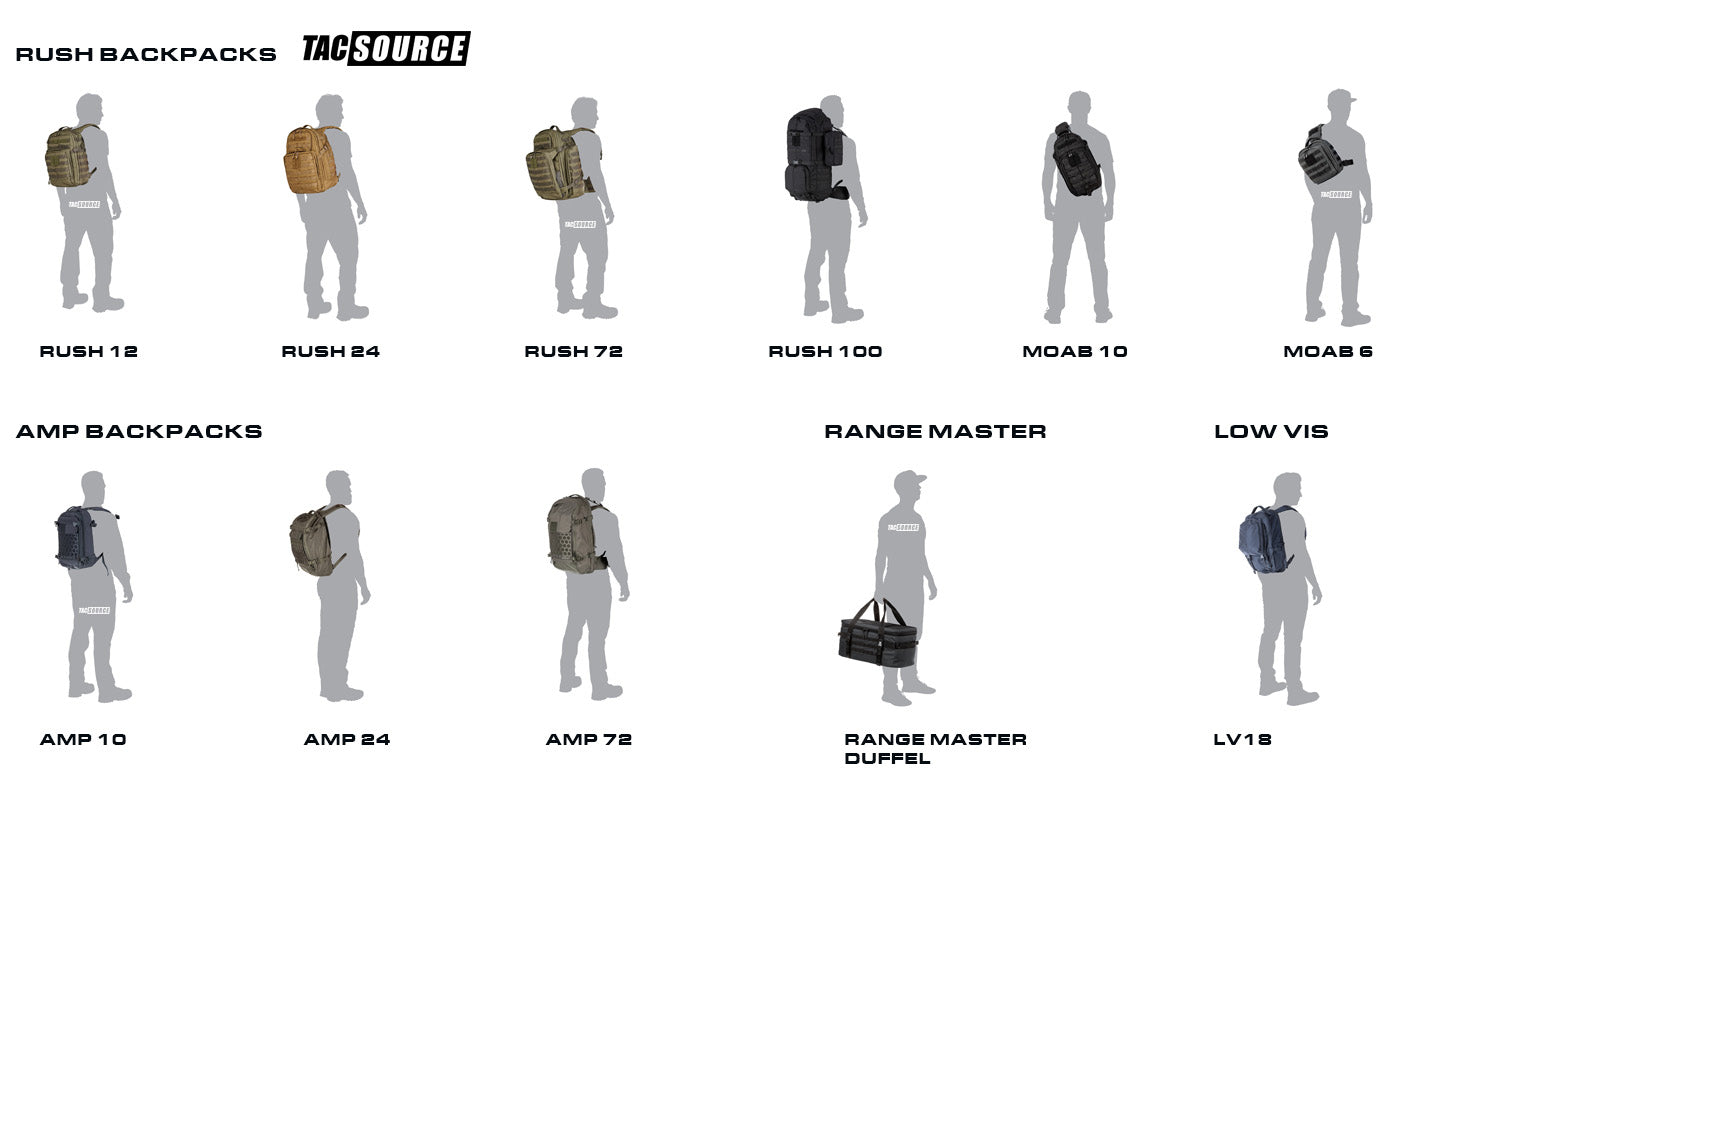 5.11 Backpack Size Chart